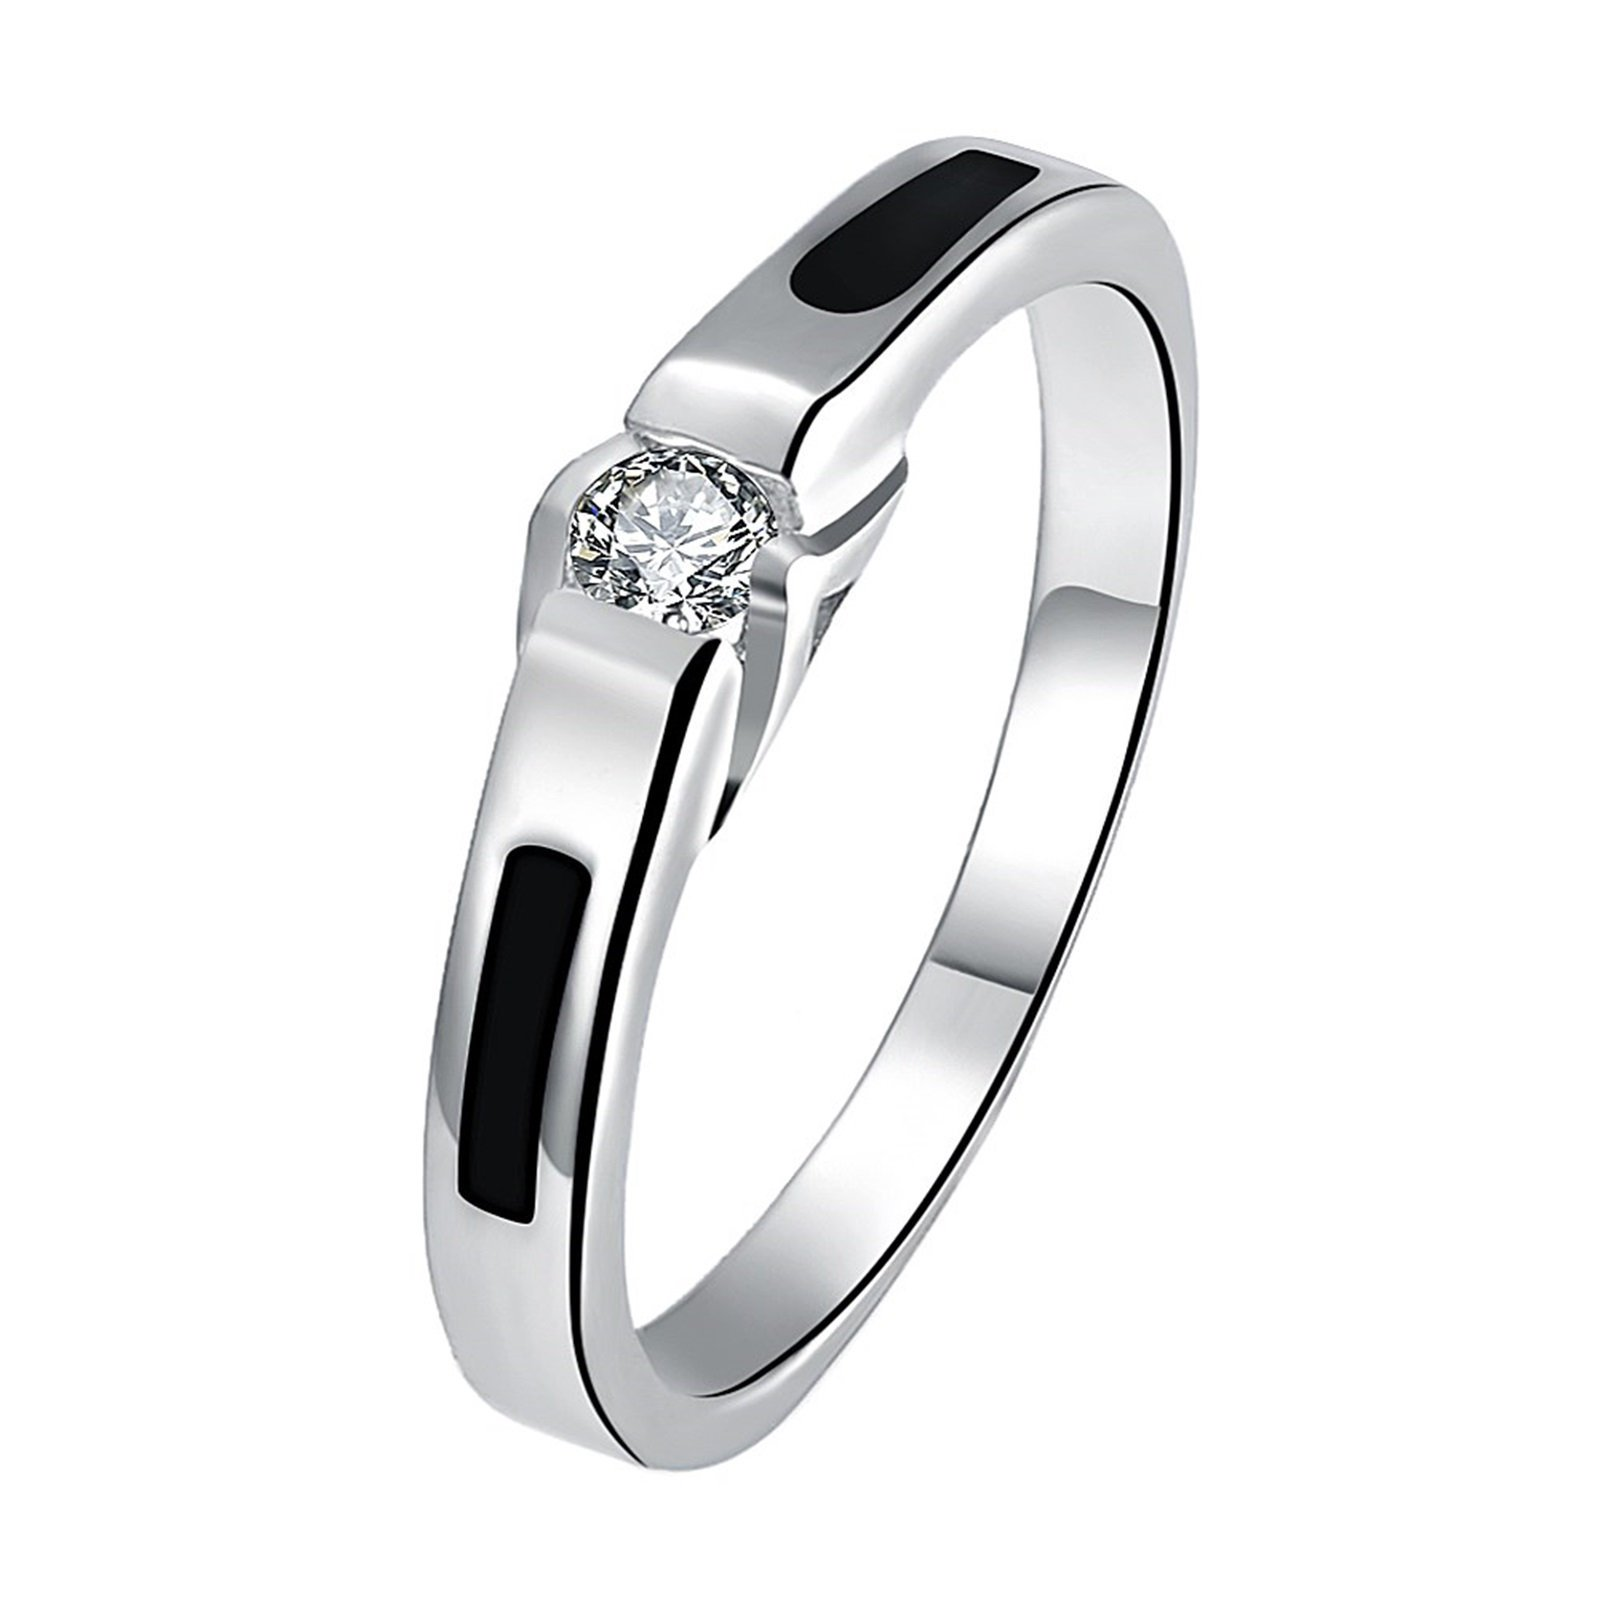 Epinki White Gold Plated Men Silver Crystal Cubic Zirconia Bridal Wedding Band Ring Size 9 Men Accessories